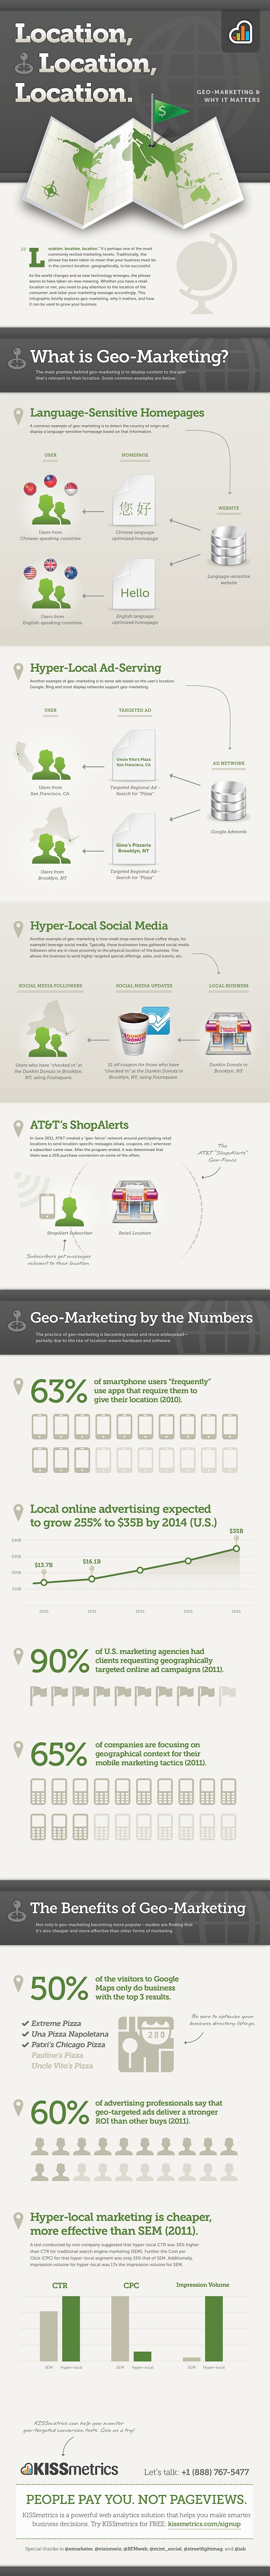 Geo-marketing & Why it Matters